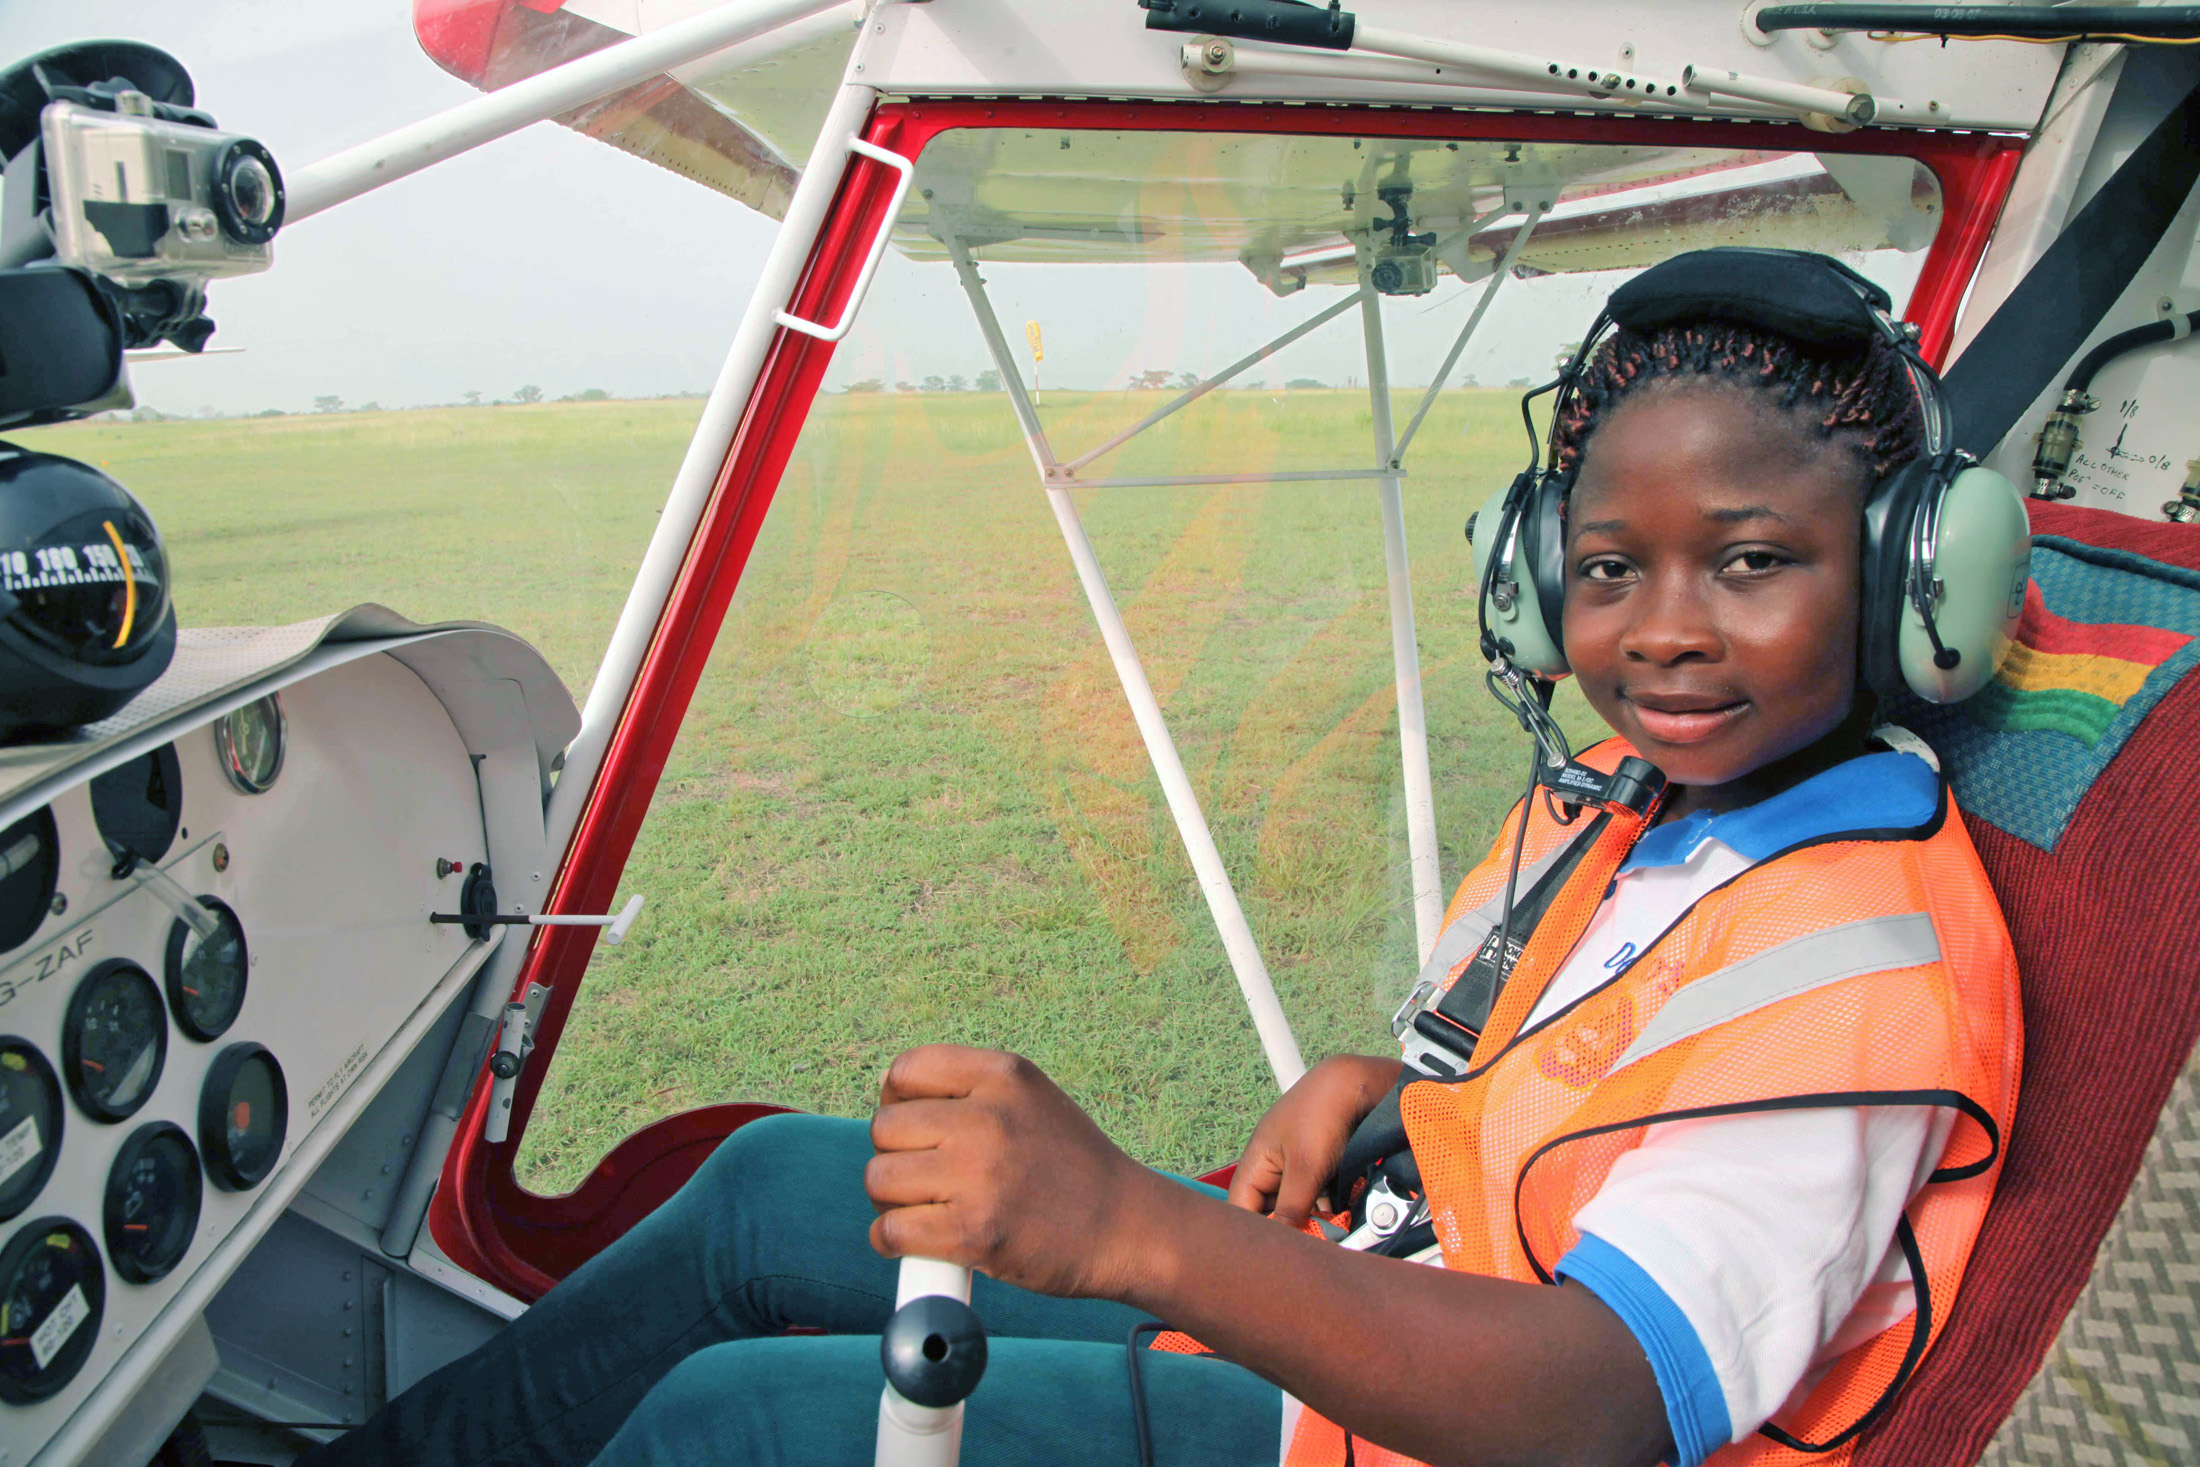 Lydia Wetsi is a trainee at NGO Medicine on the Move in Ghana. The NGO trains community health workers to fly planes so they can share health messages and provide health care to remote communities living around Lake Volta in the north